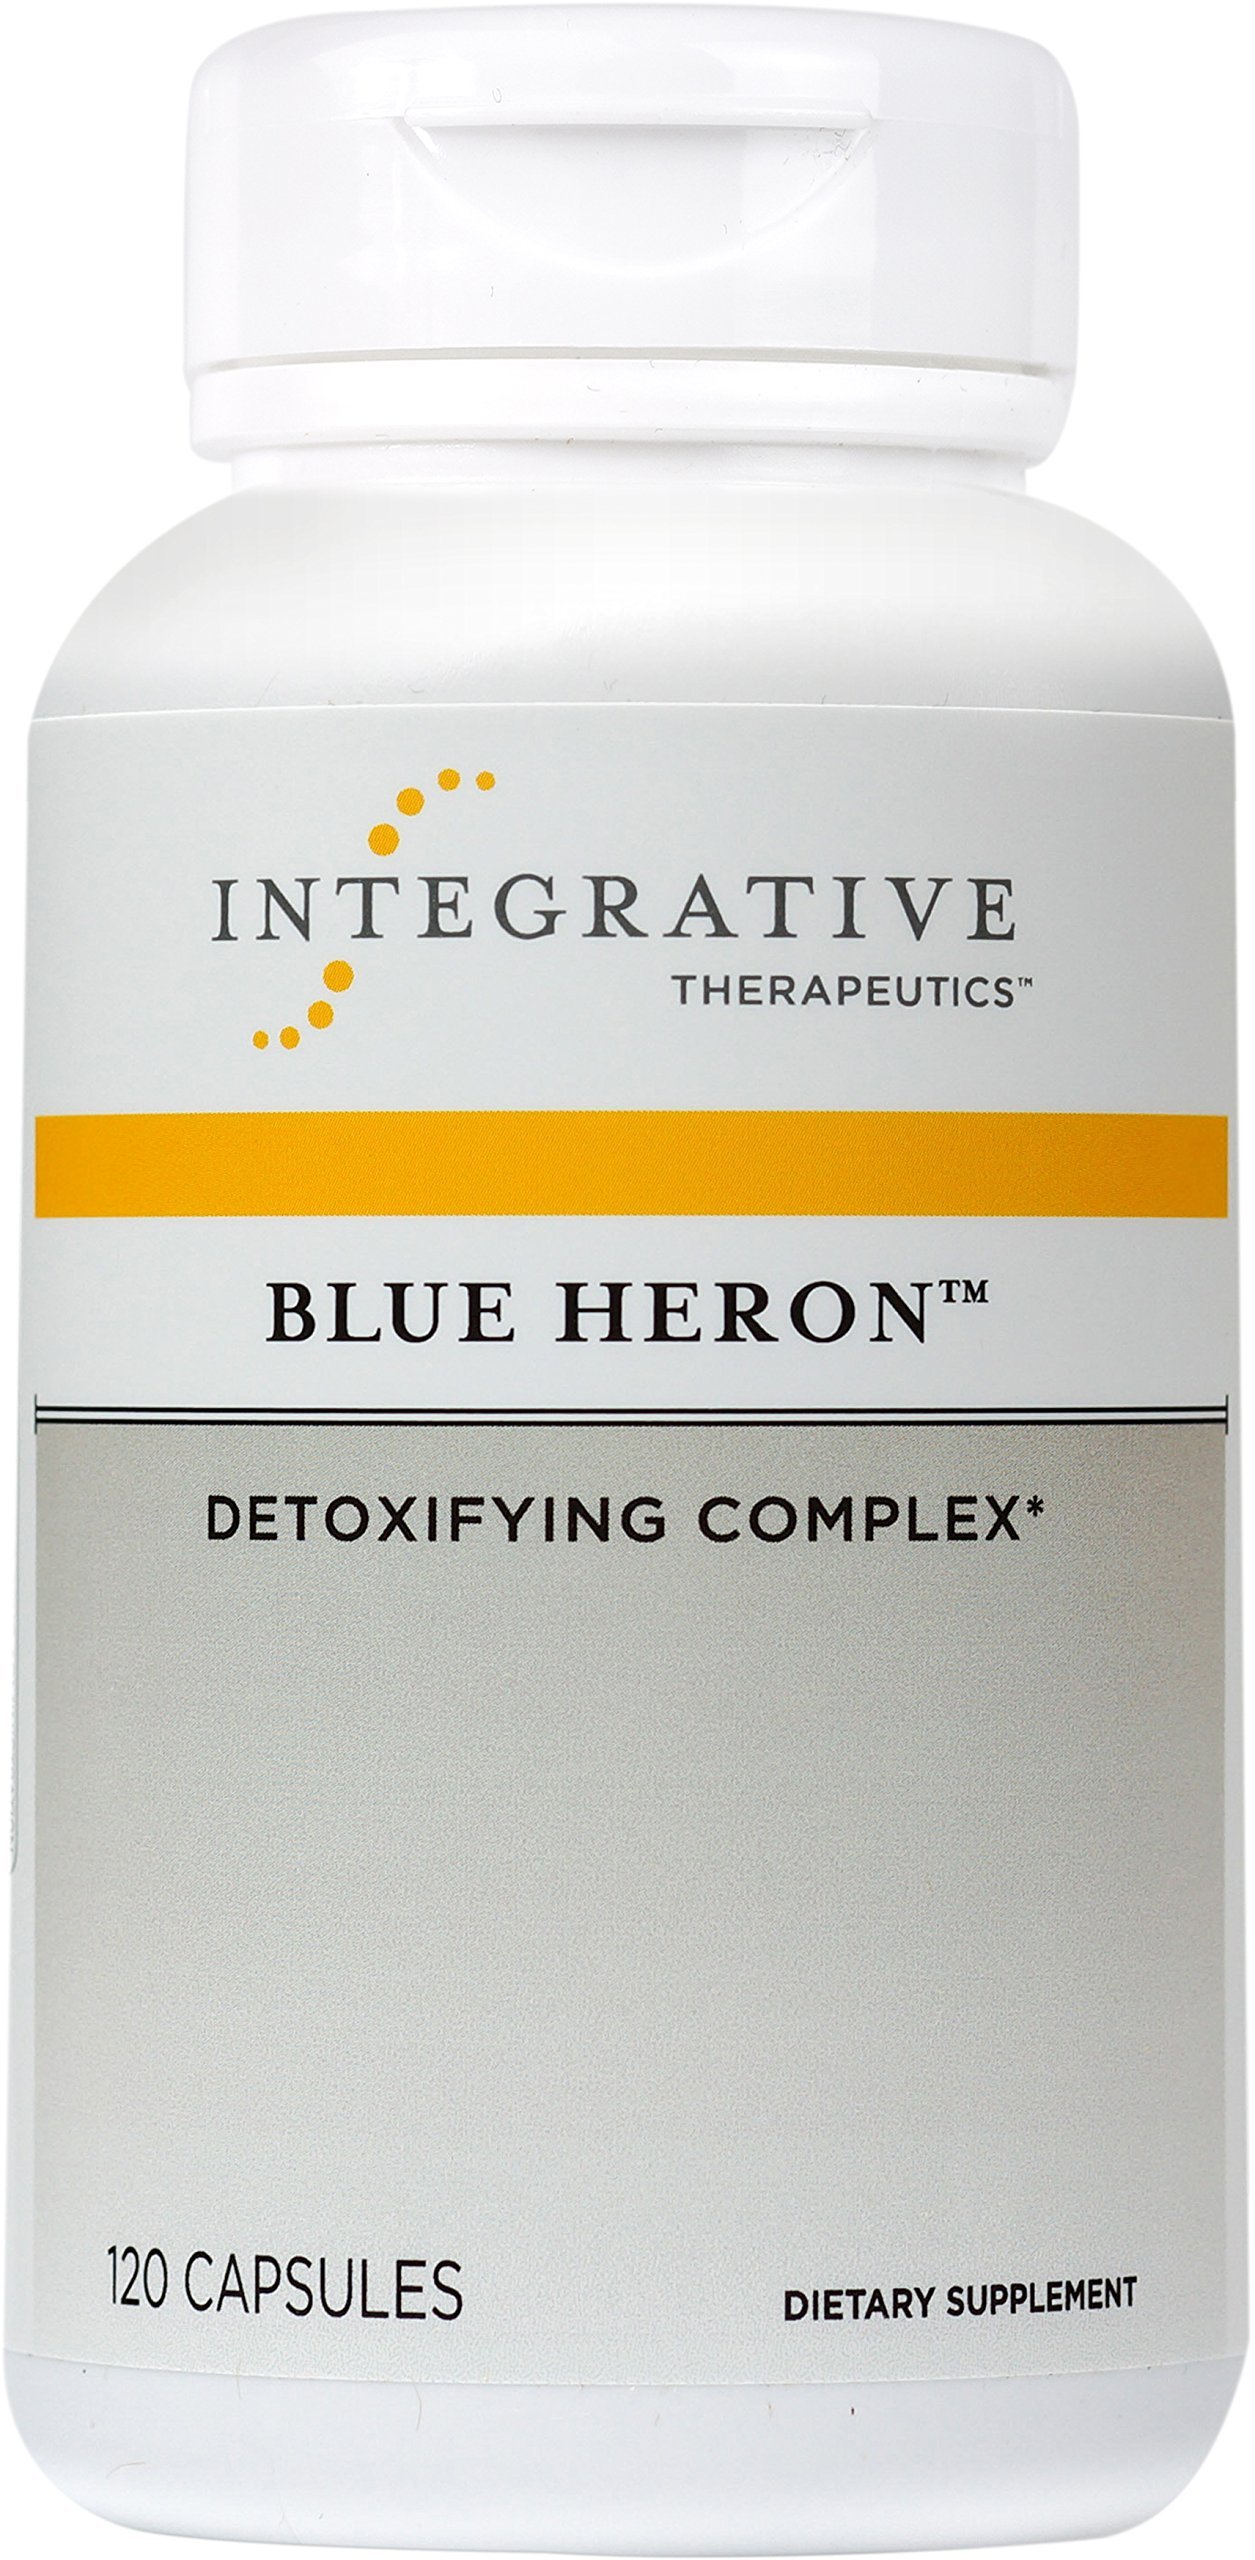 Integrative Therapeutics - Blue Heron - Detoxifying Complex with Dietary Fiber, Herbs, and Probiotics - 120 Capsules